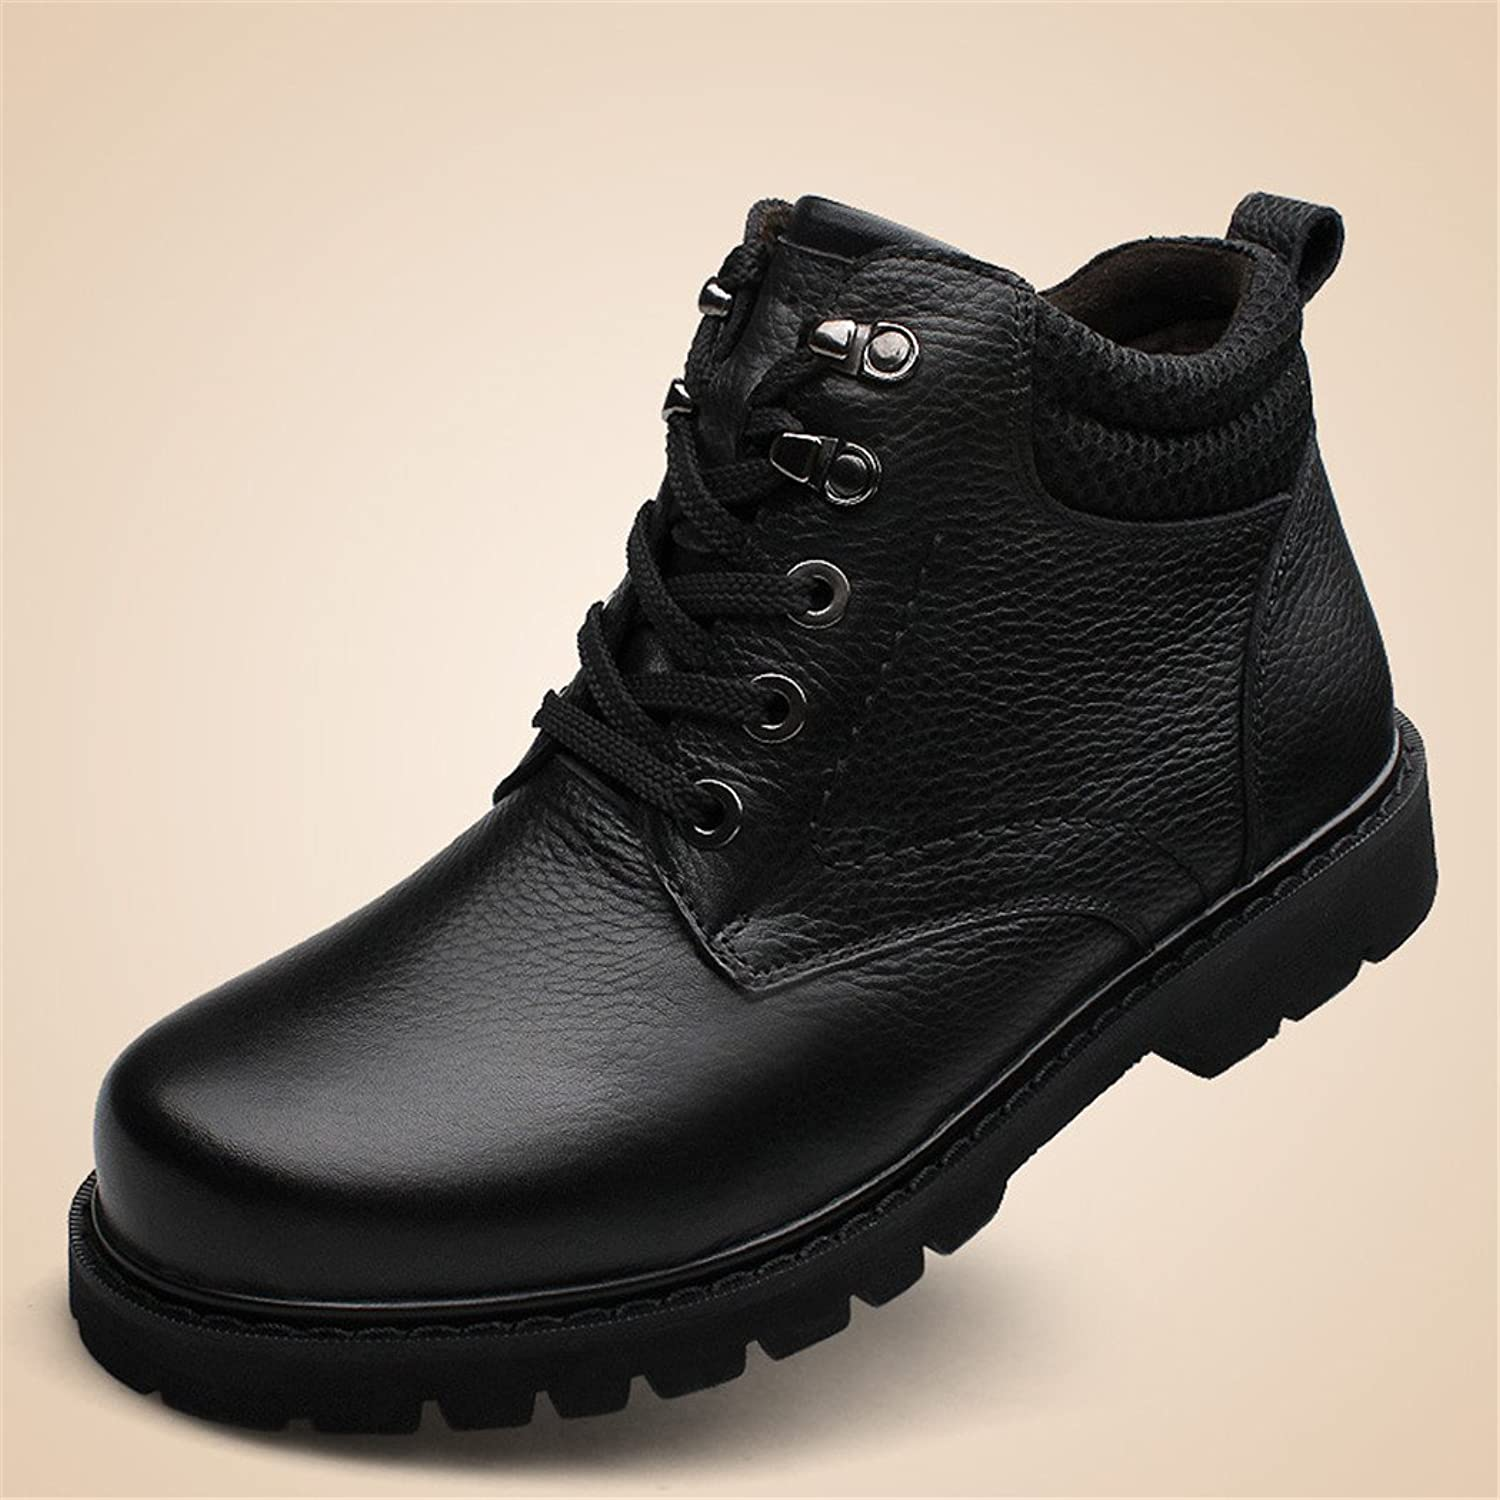 ZQ@QXFall and winter warm wear casual men's leather men's leather Martin boots